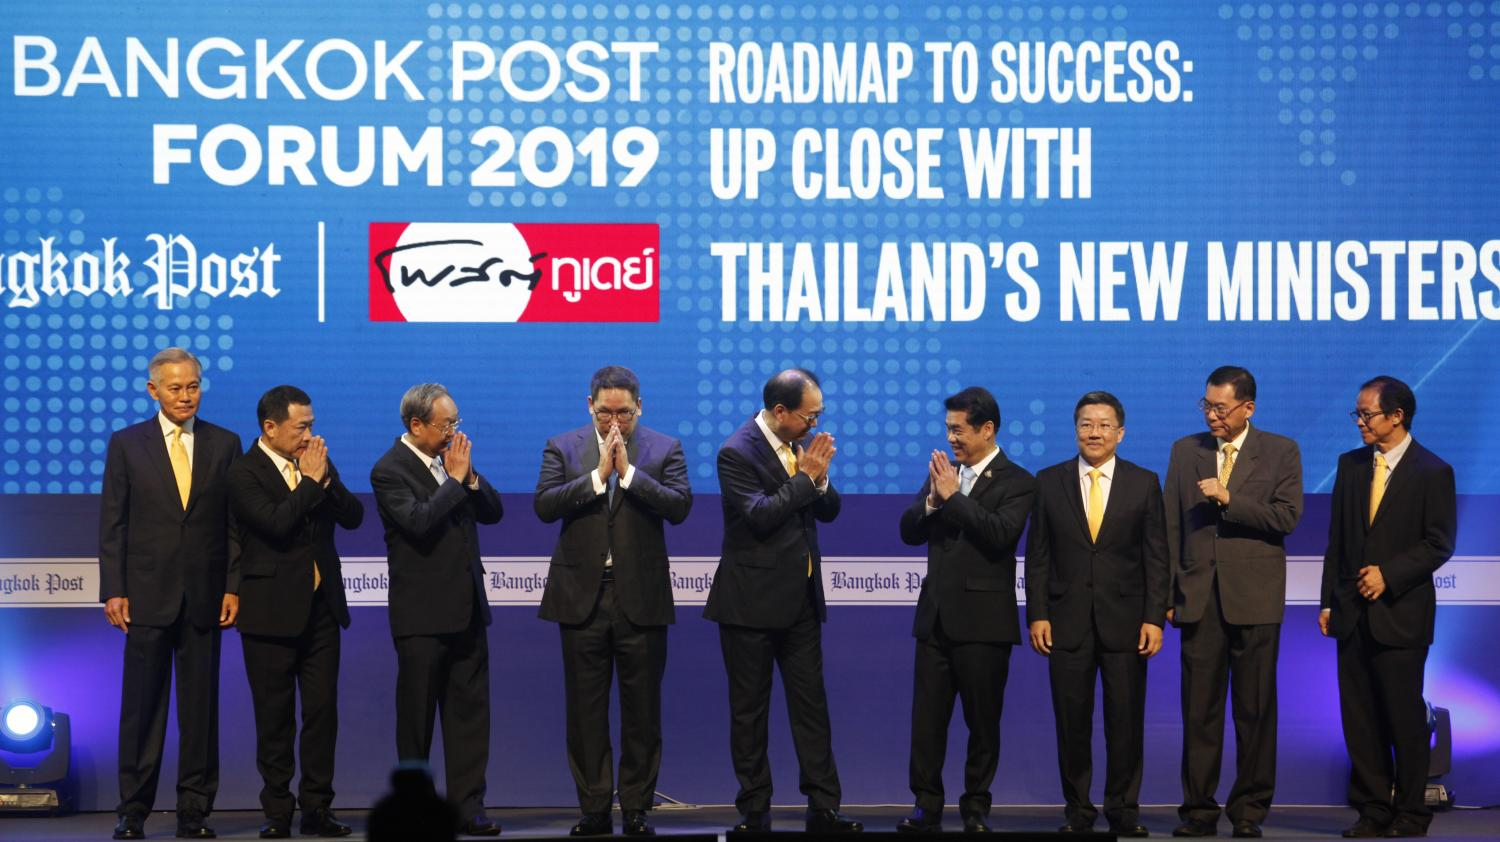 Bangkok Post Plc directors and executives greet cabinet ministers at the Bangkok Post Forum 2019. From left: Russel Leighton Kekuewa, Independent Director; Ek-Rit Boonpiti, Executive Director; Energy Minister Sontirat Sontijirawong; Finance Minister Uttama Savanayana; Worachai Bhicharnchitr, Vice Chairman of the Board; Industry Minister Suriya Jungrungreangkit; Pornchai Chunhachinda, Independent Director; Ronnachit Mahattanapreut, Director; and Chiratas Nivatpumin, Acting Chief Operating Officer. (Photo by Wichan Charoenkiatpakul)